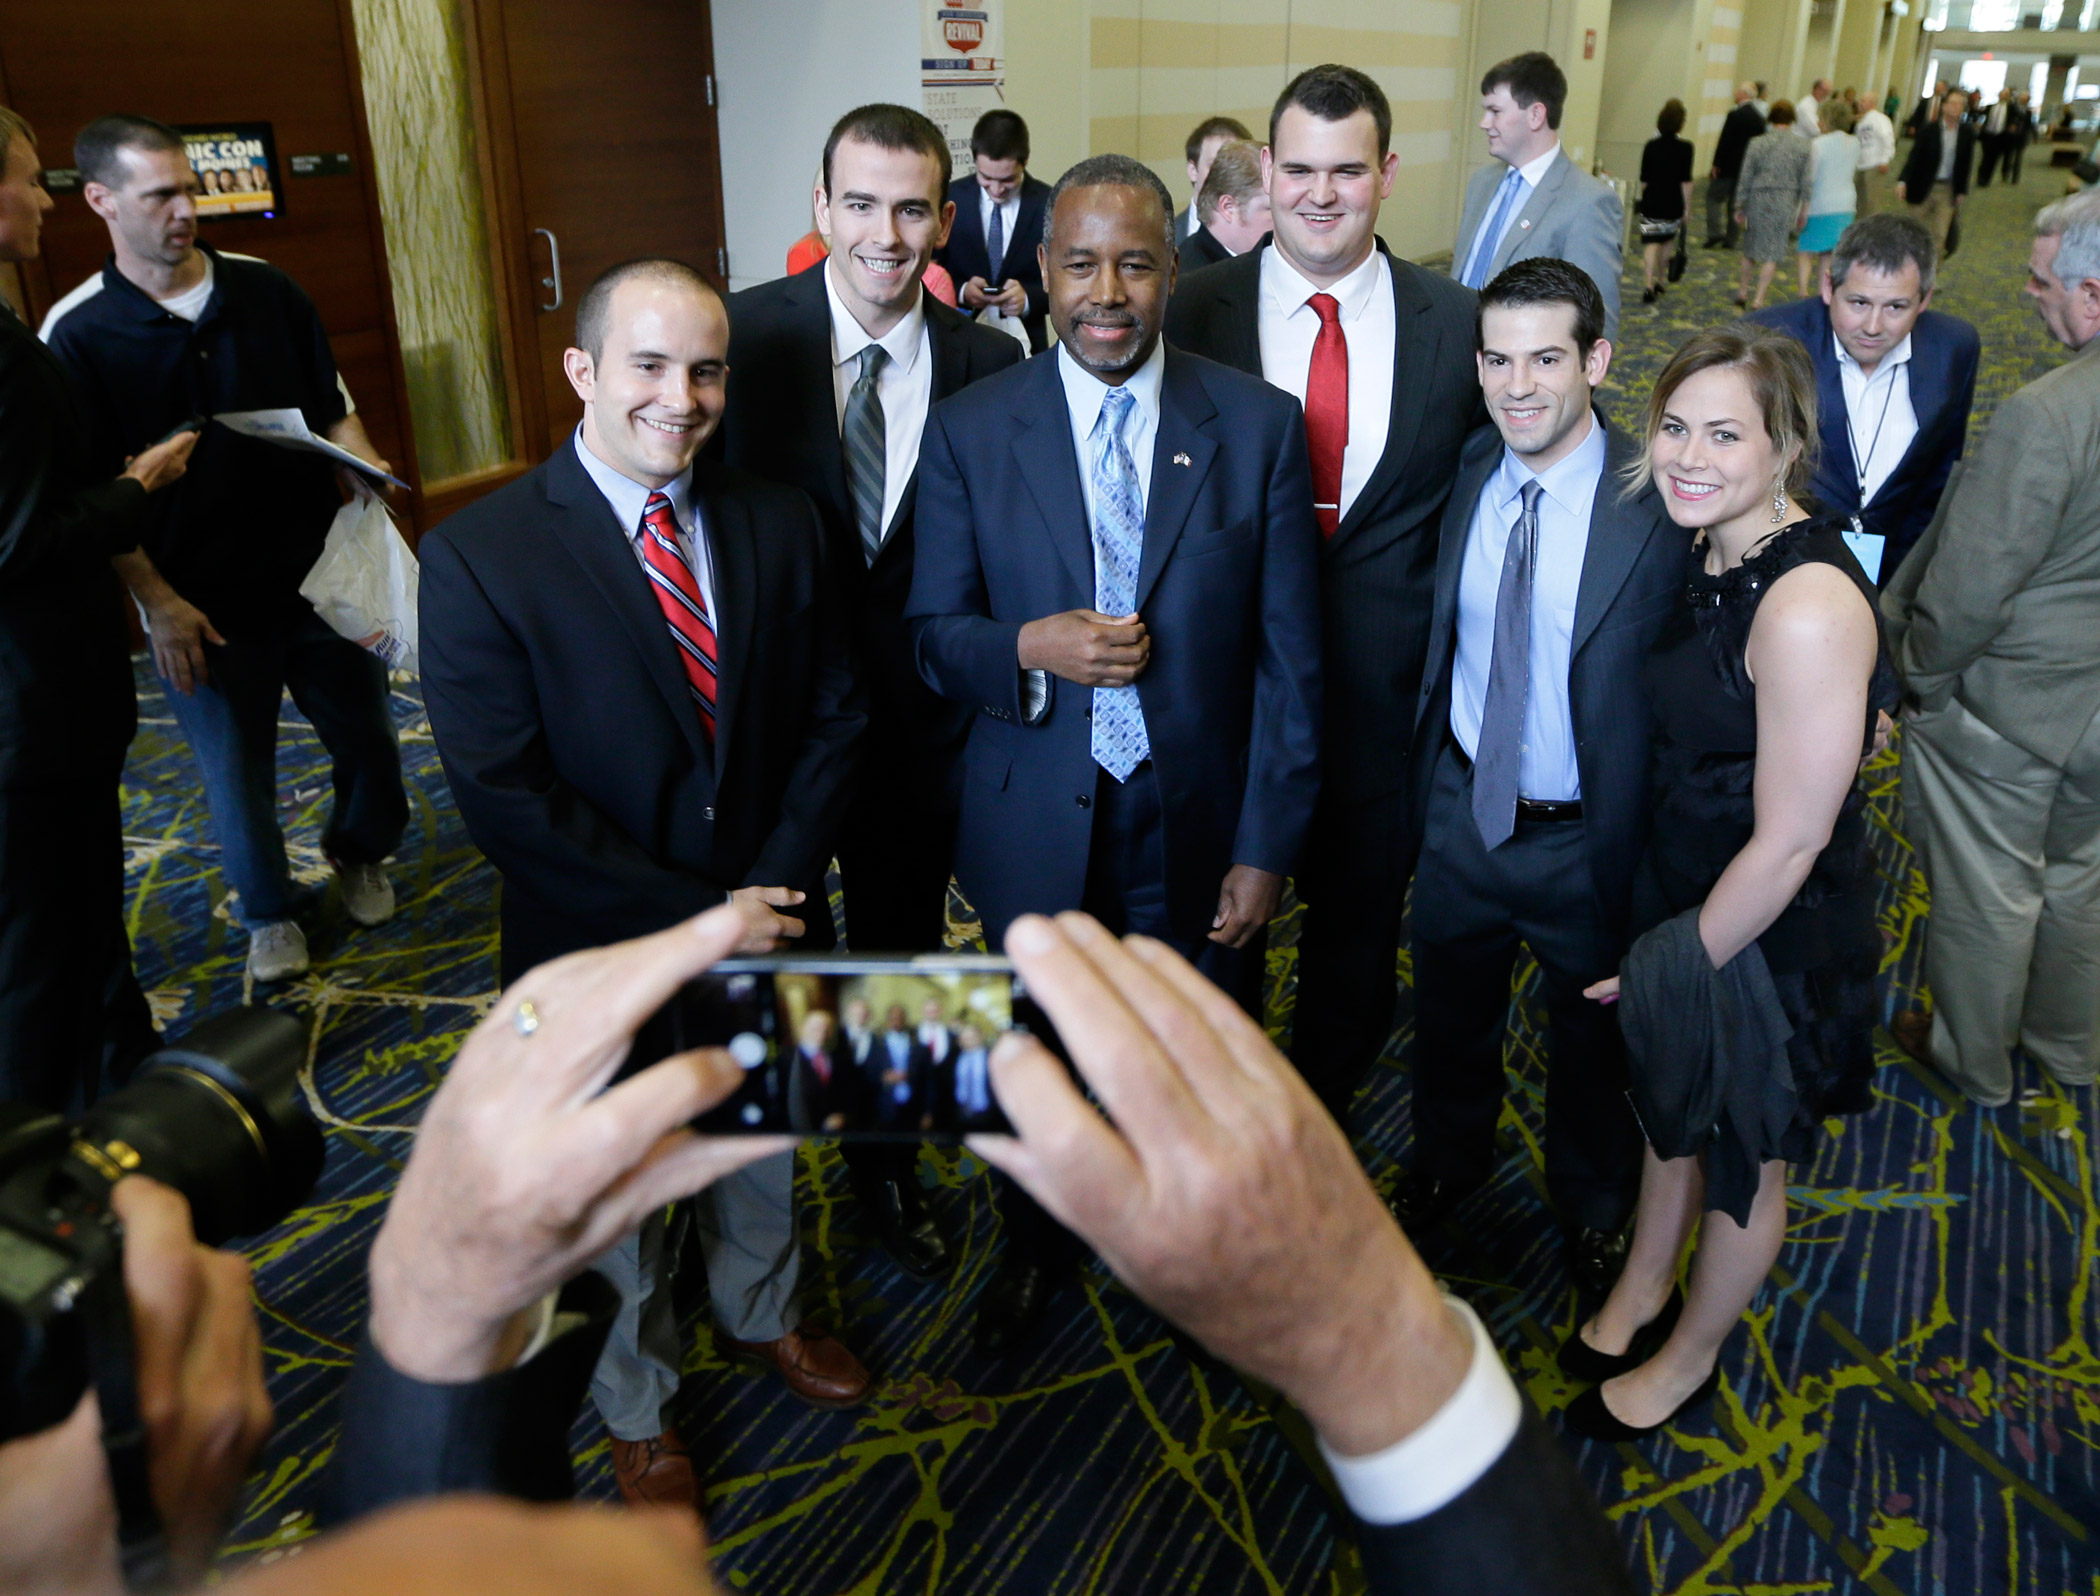 Ben Carson poses for a photo during the Iowa Republican Party's Lincoln Dinner on May 16, 2015, in Des Moines, Iowa.